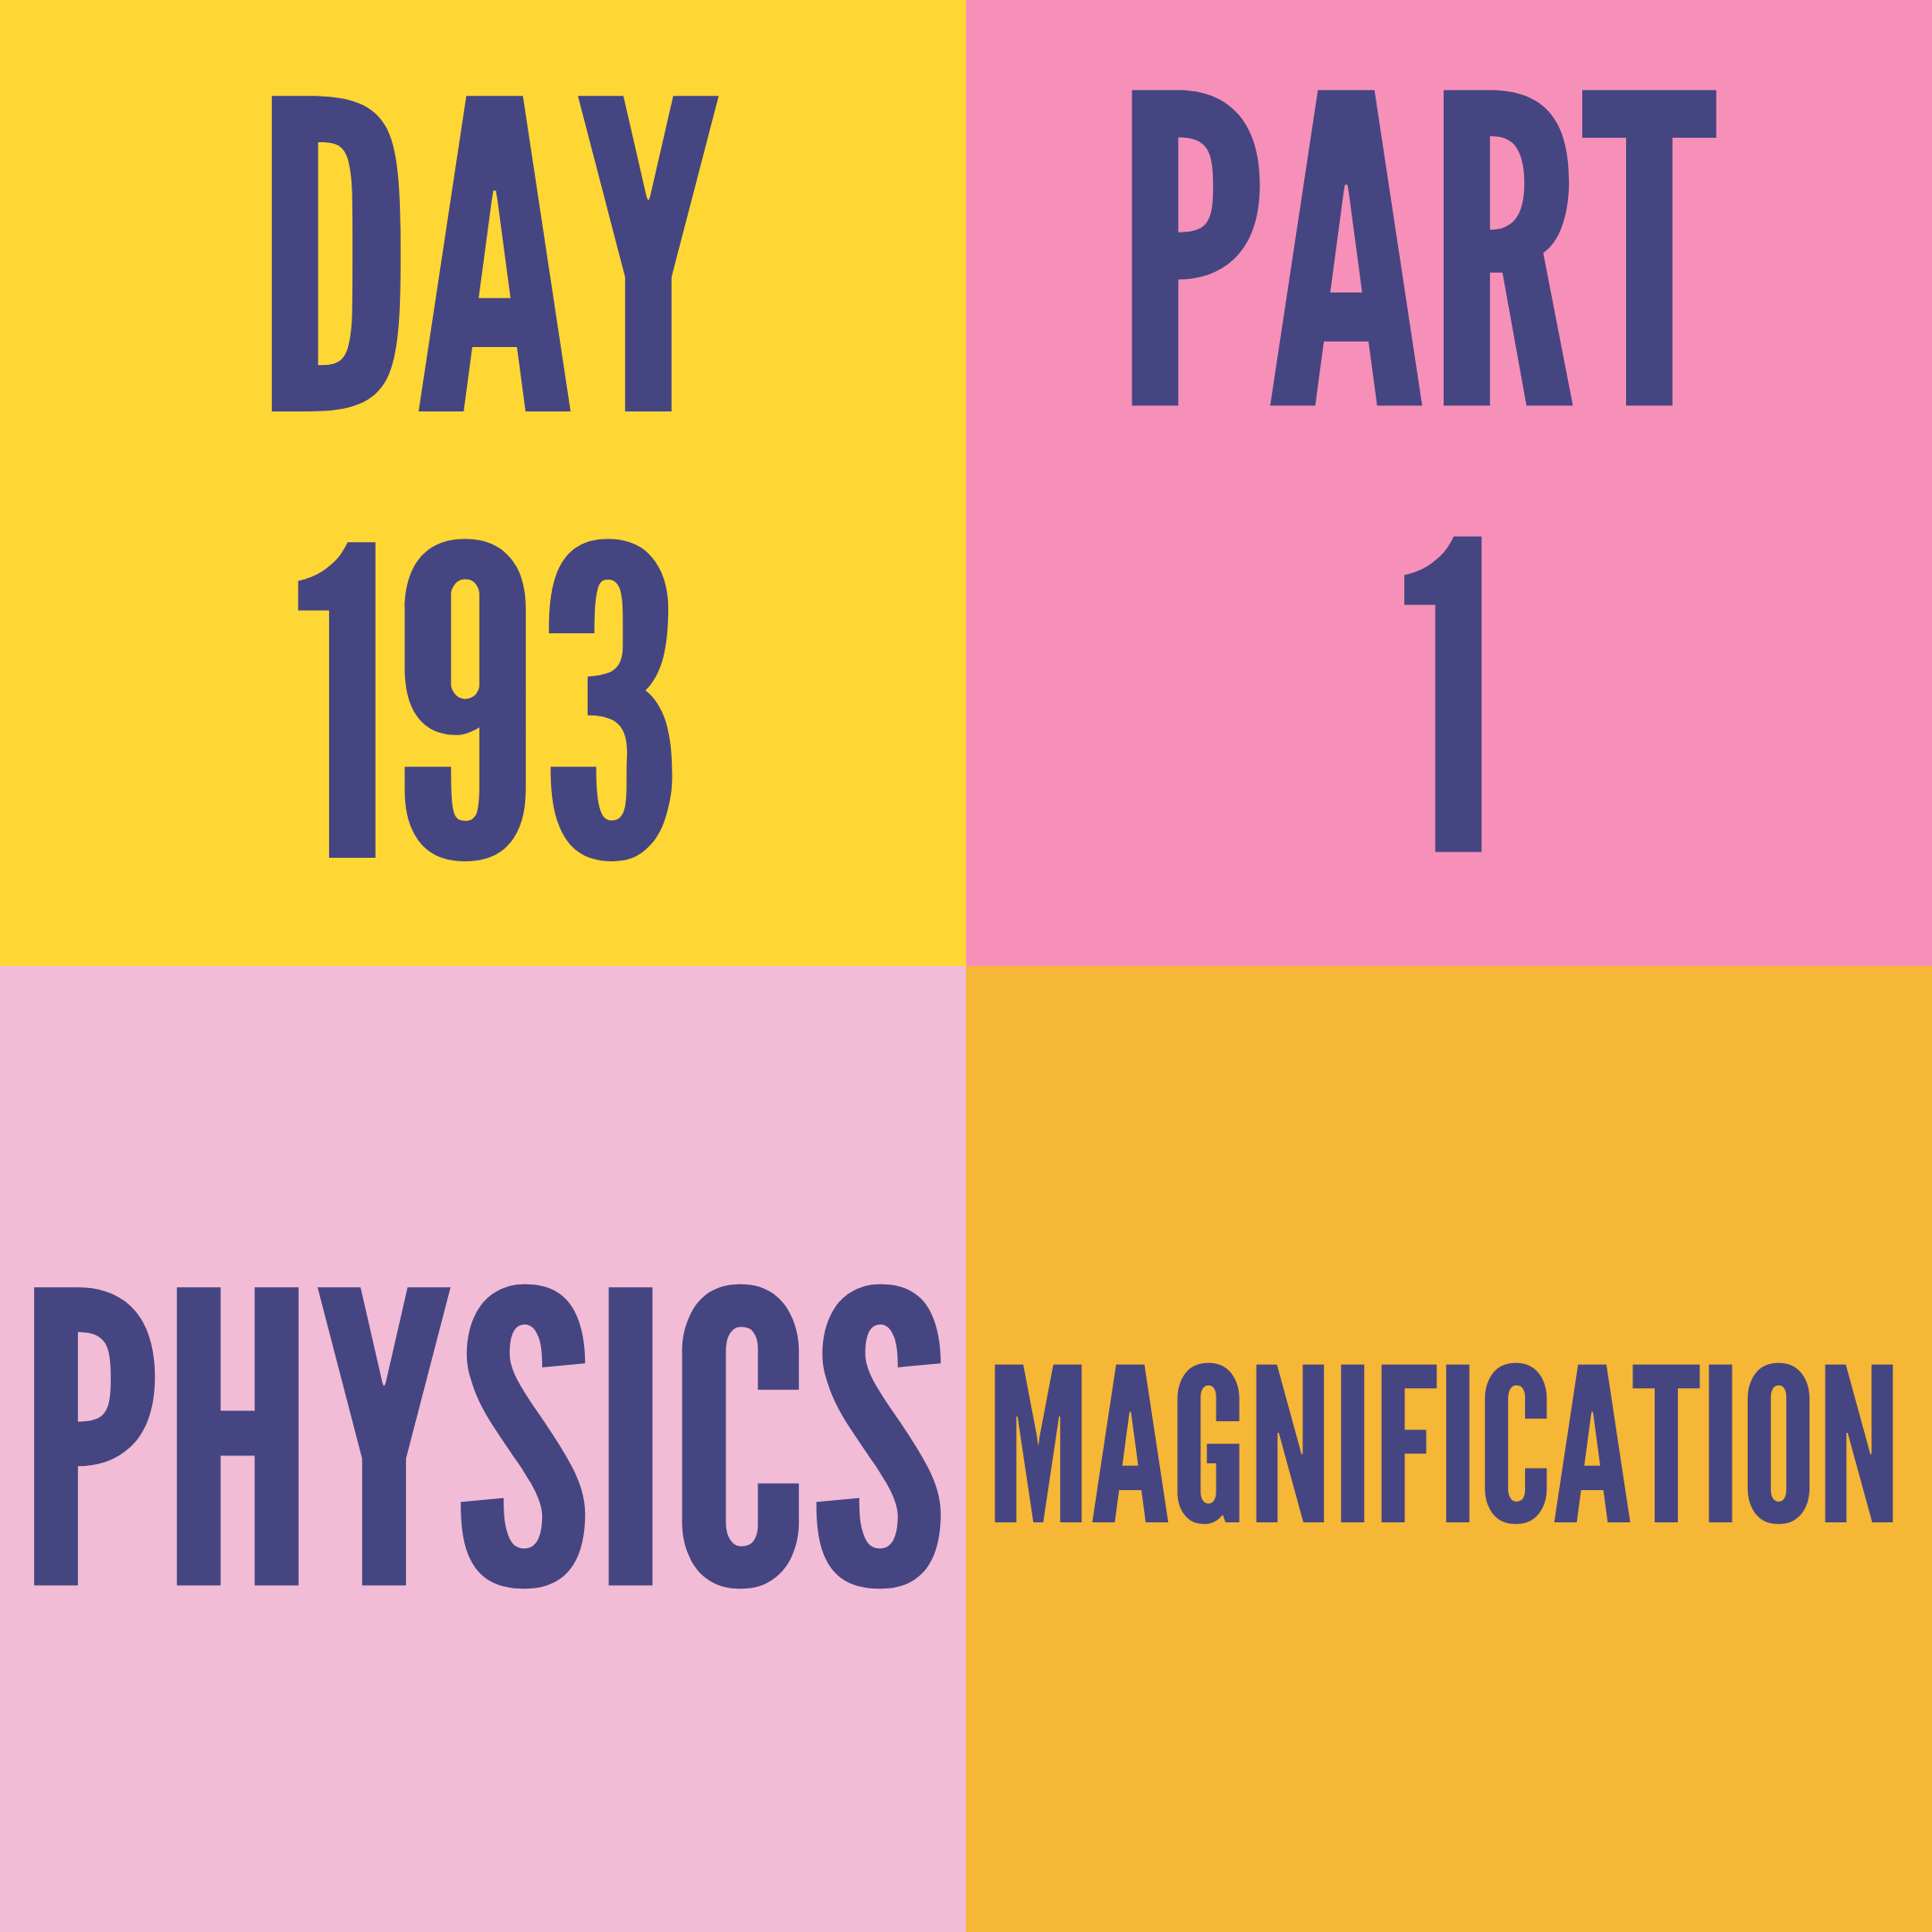 DAY-193 PART-1 MAGNIFICATION